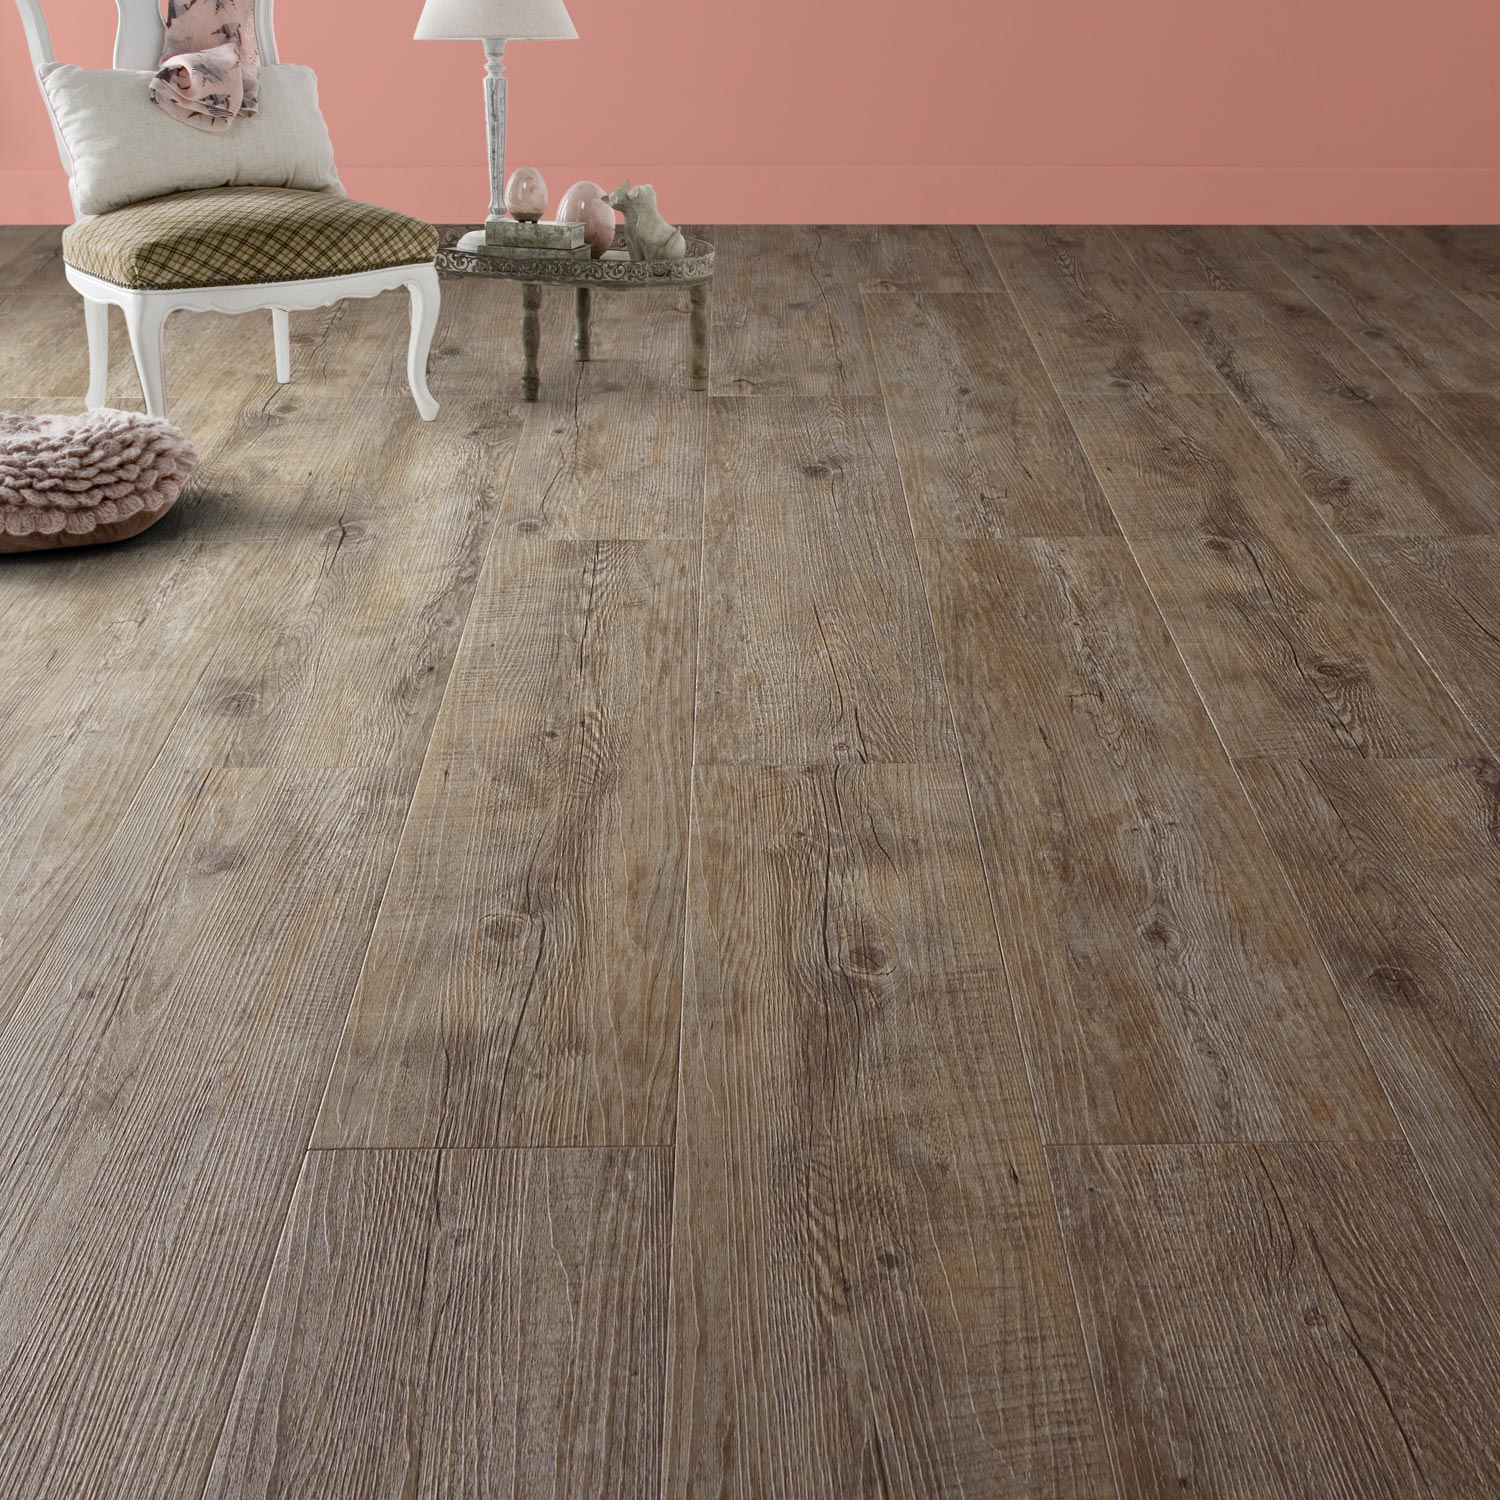 Lame pvc adh sive gris pecan senso rustic gerflor leroy for Dalles pvc clipsables gerflor